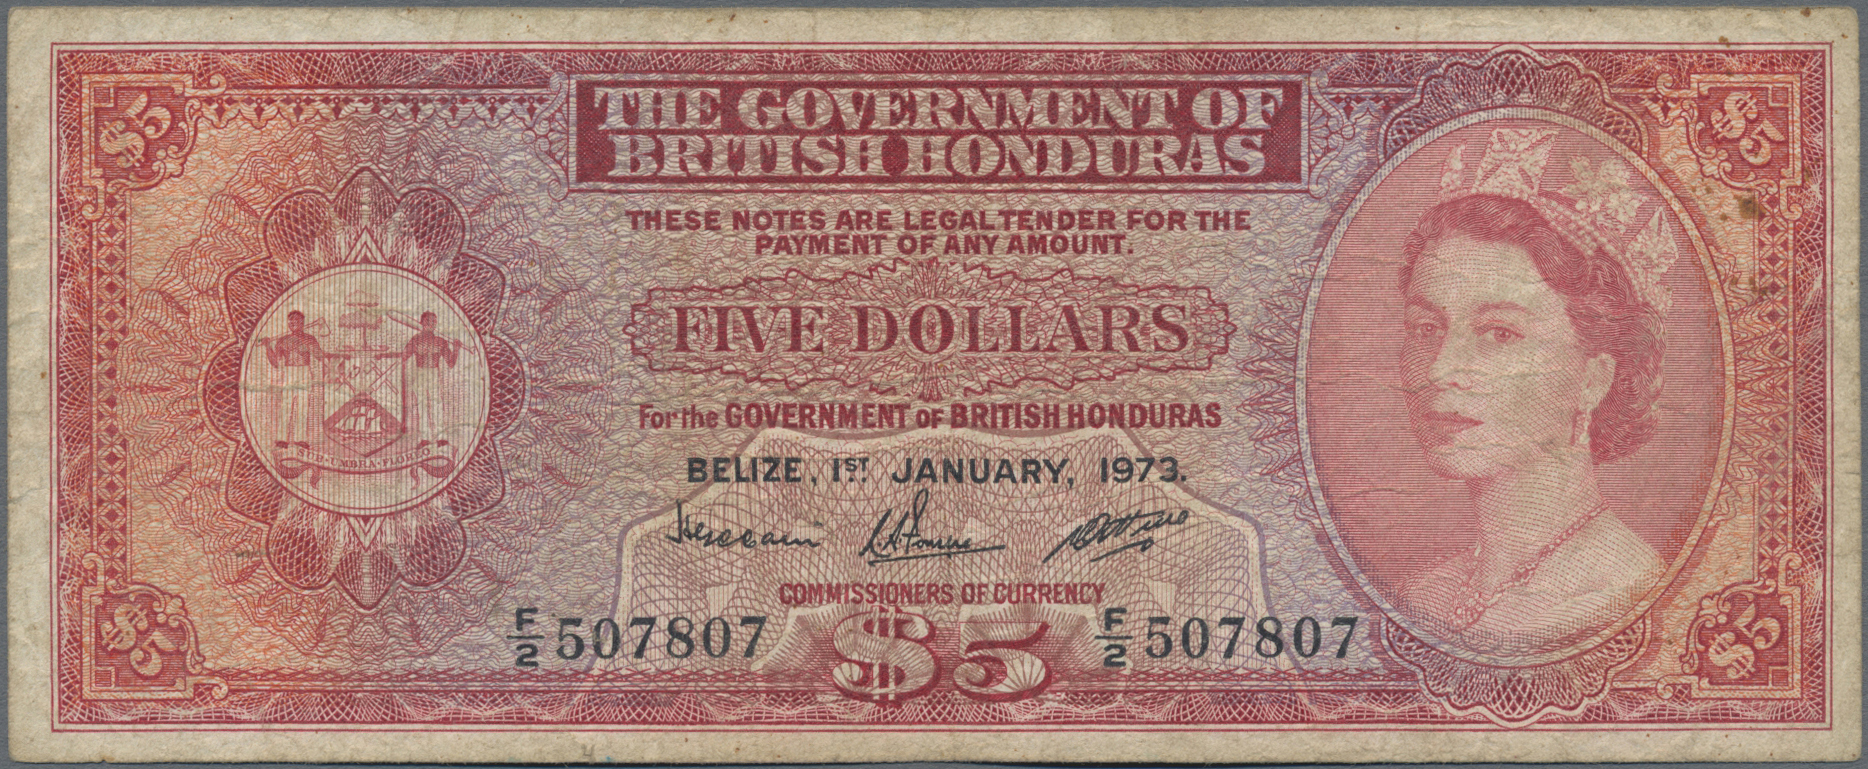 Lot 00080 - British Honduras | Banknoten  -  Auktionshaus Christoph Gärtner GmbH & Co. KG Sale #48 The Banknotes